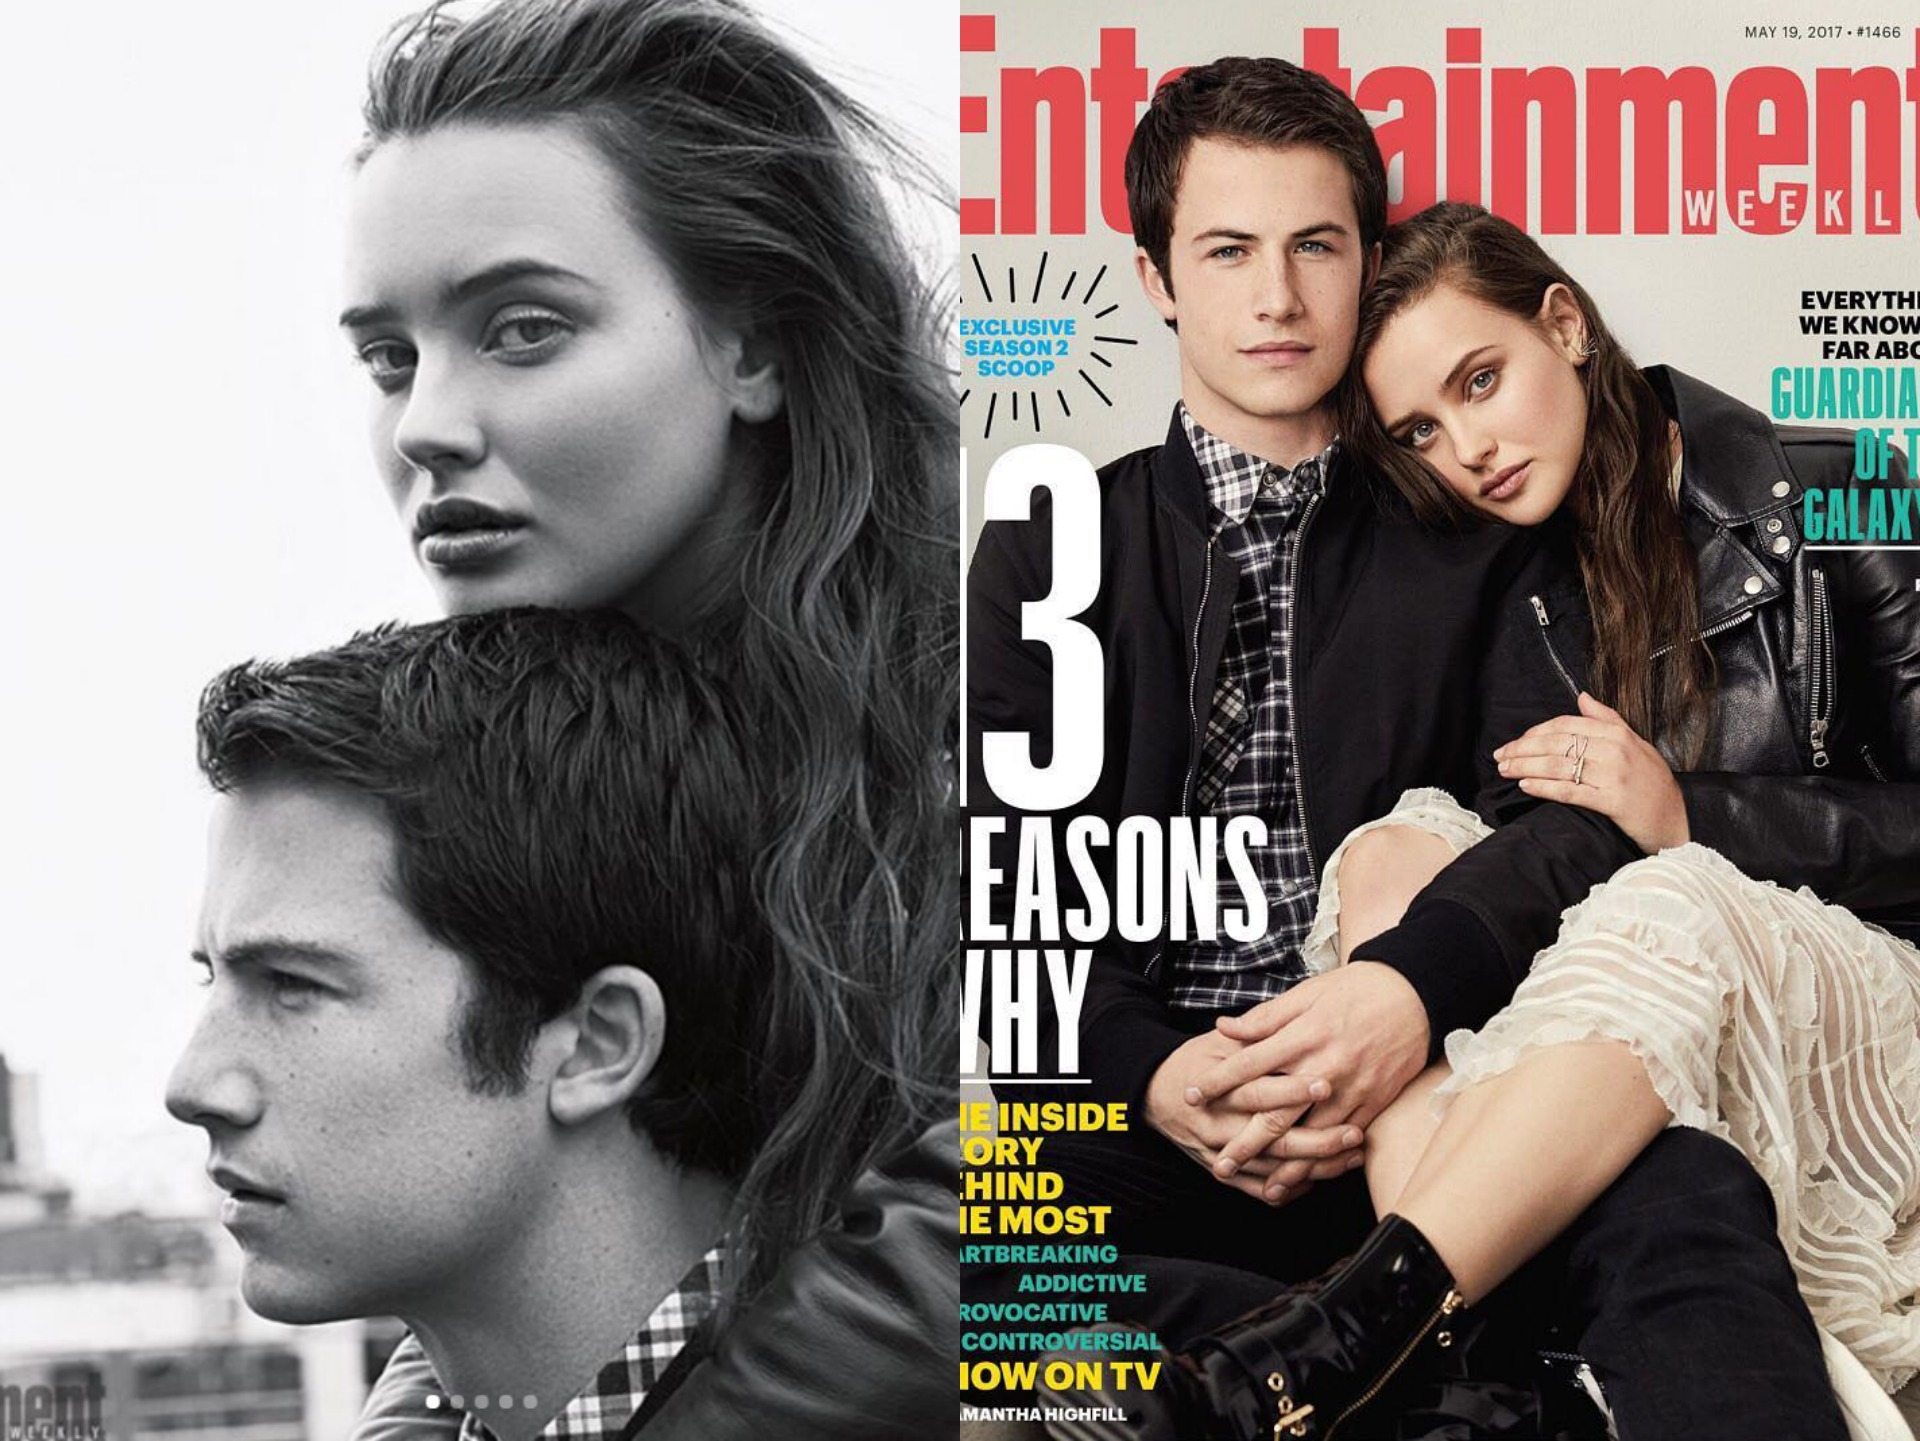 Katherine Langford responds strongly to controversy surrounding 13 reasons why